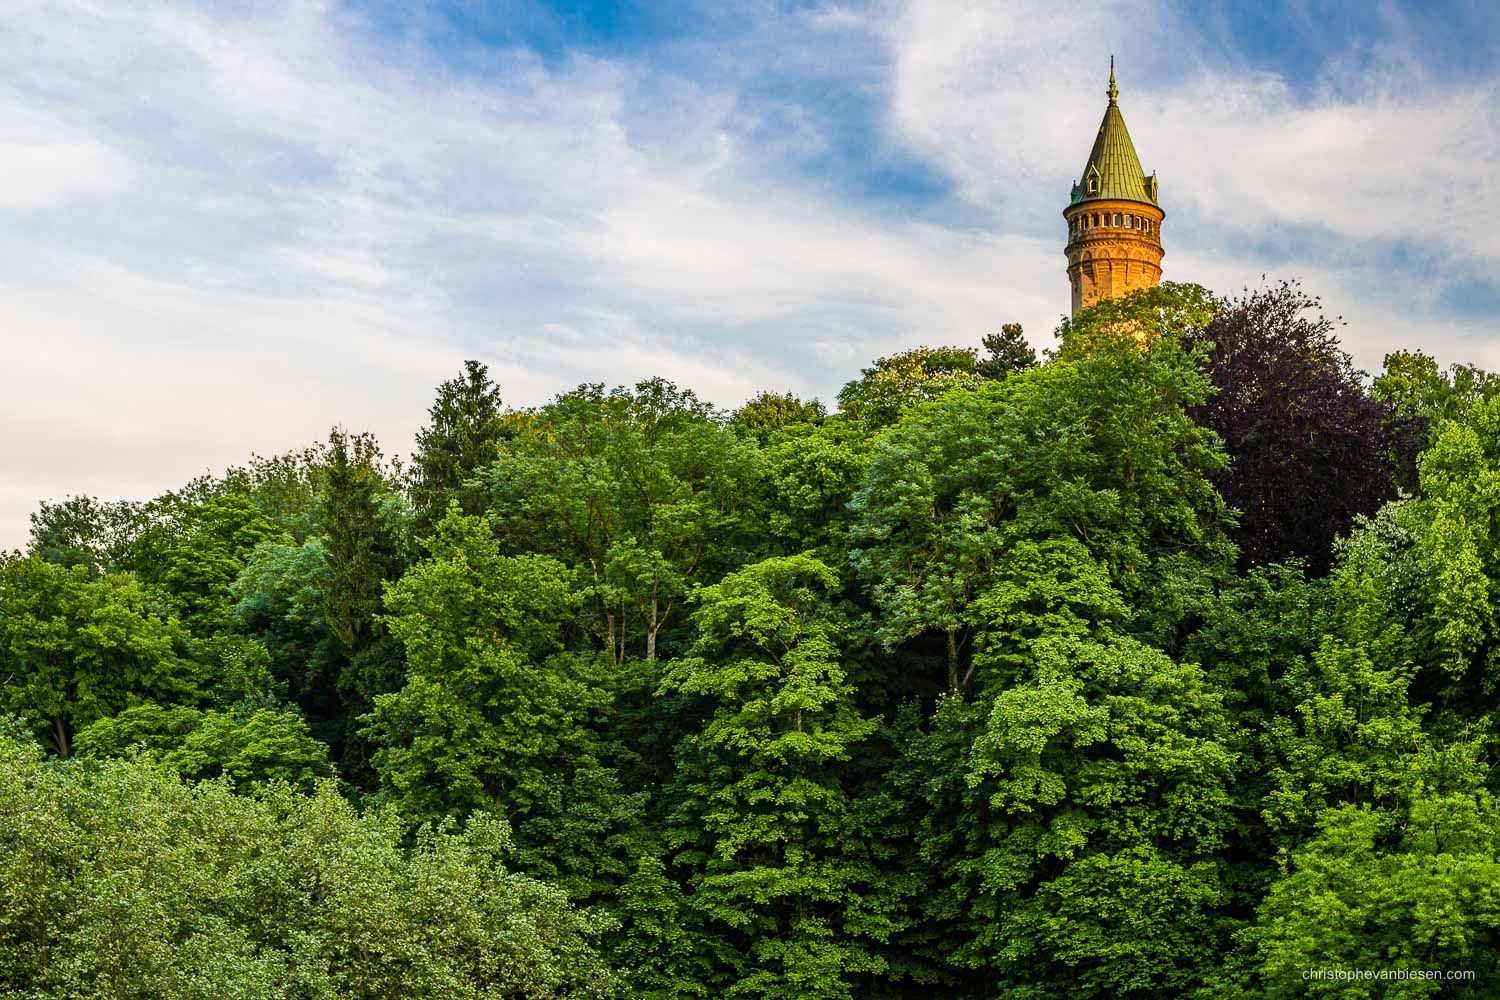 Summer in Luxembourg - The BCEE tower standing high above the lush forests of the Petrusse valley - Maiden Tower